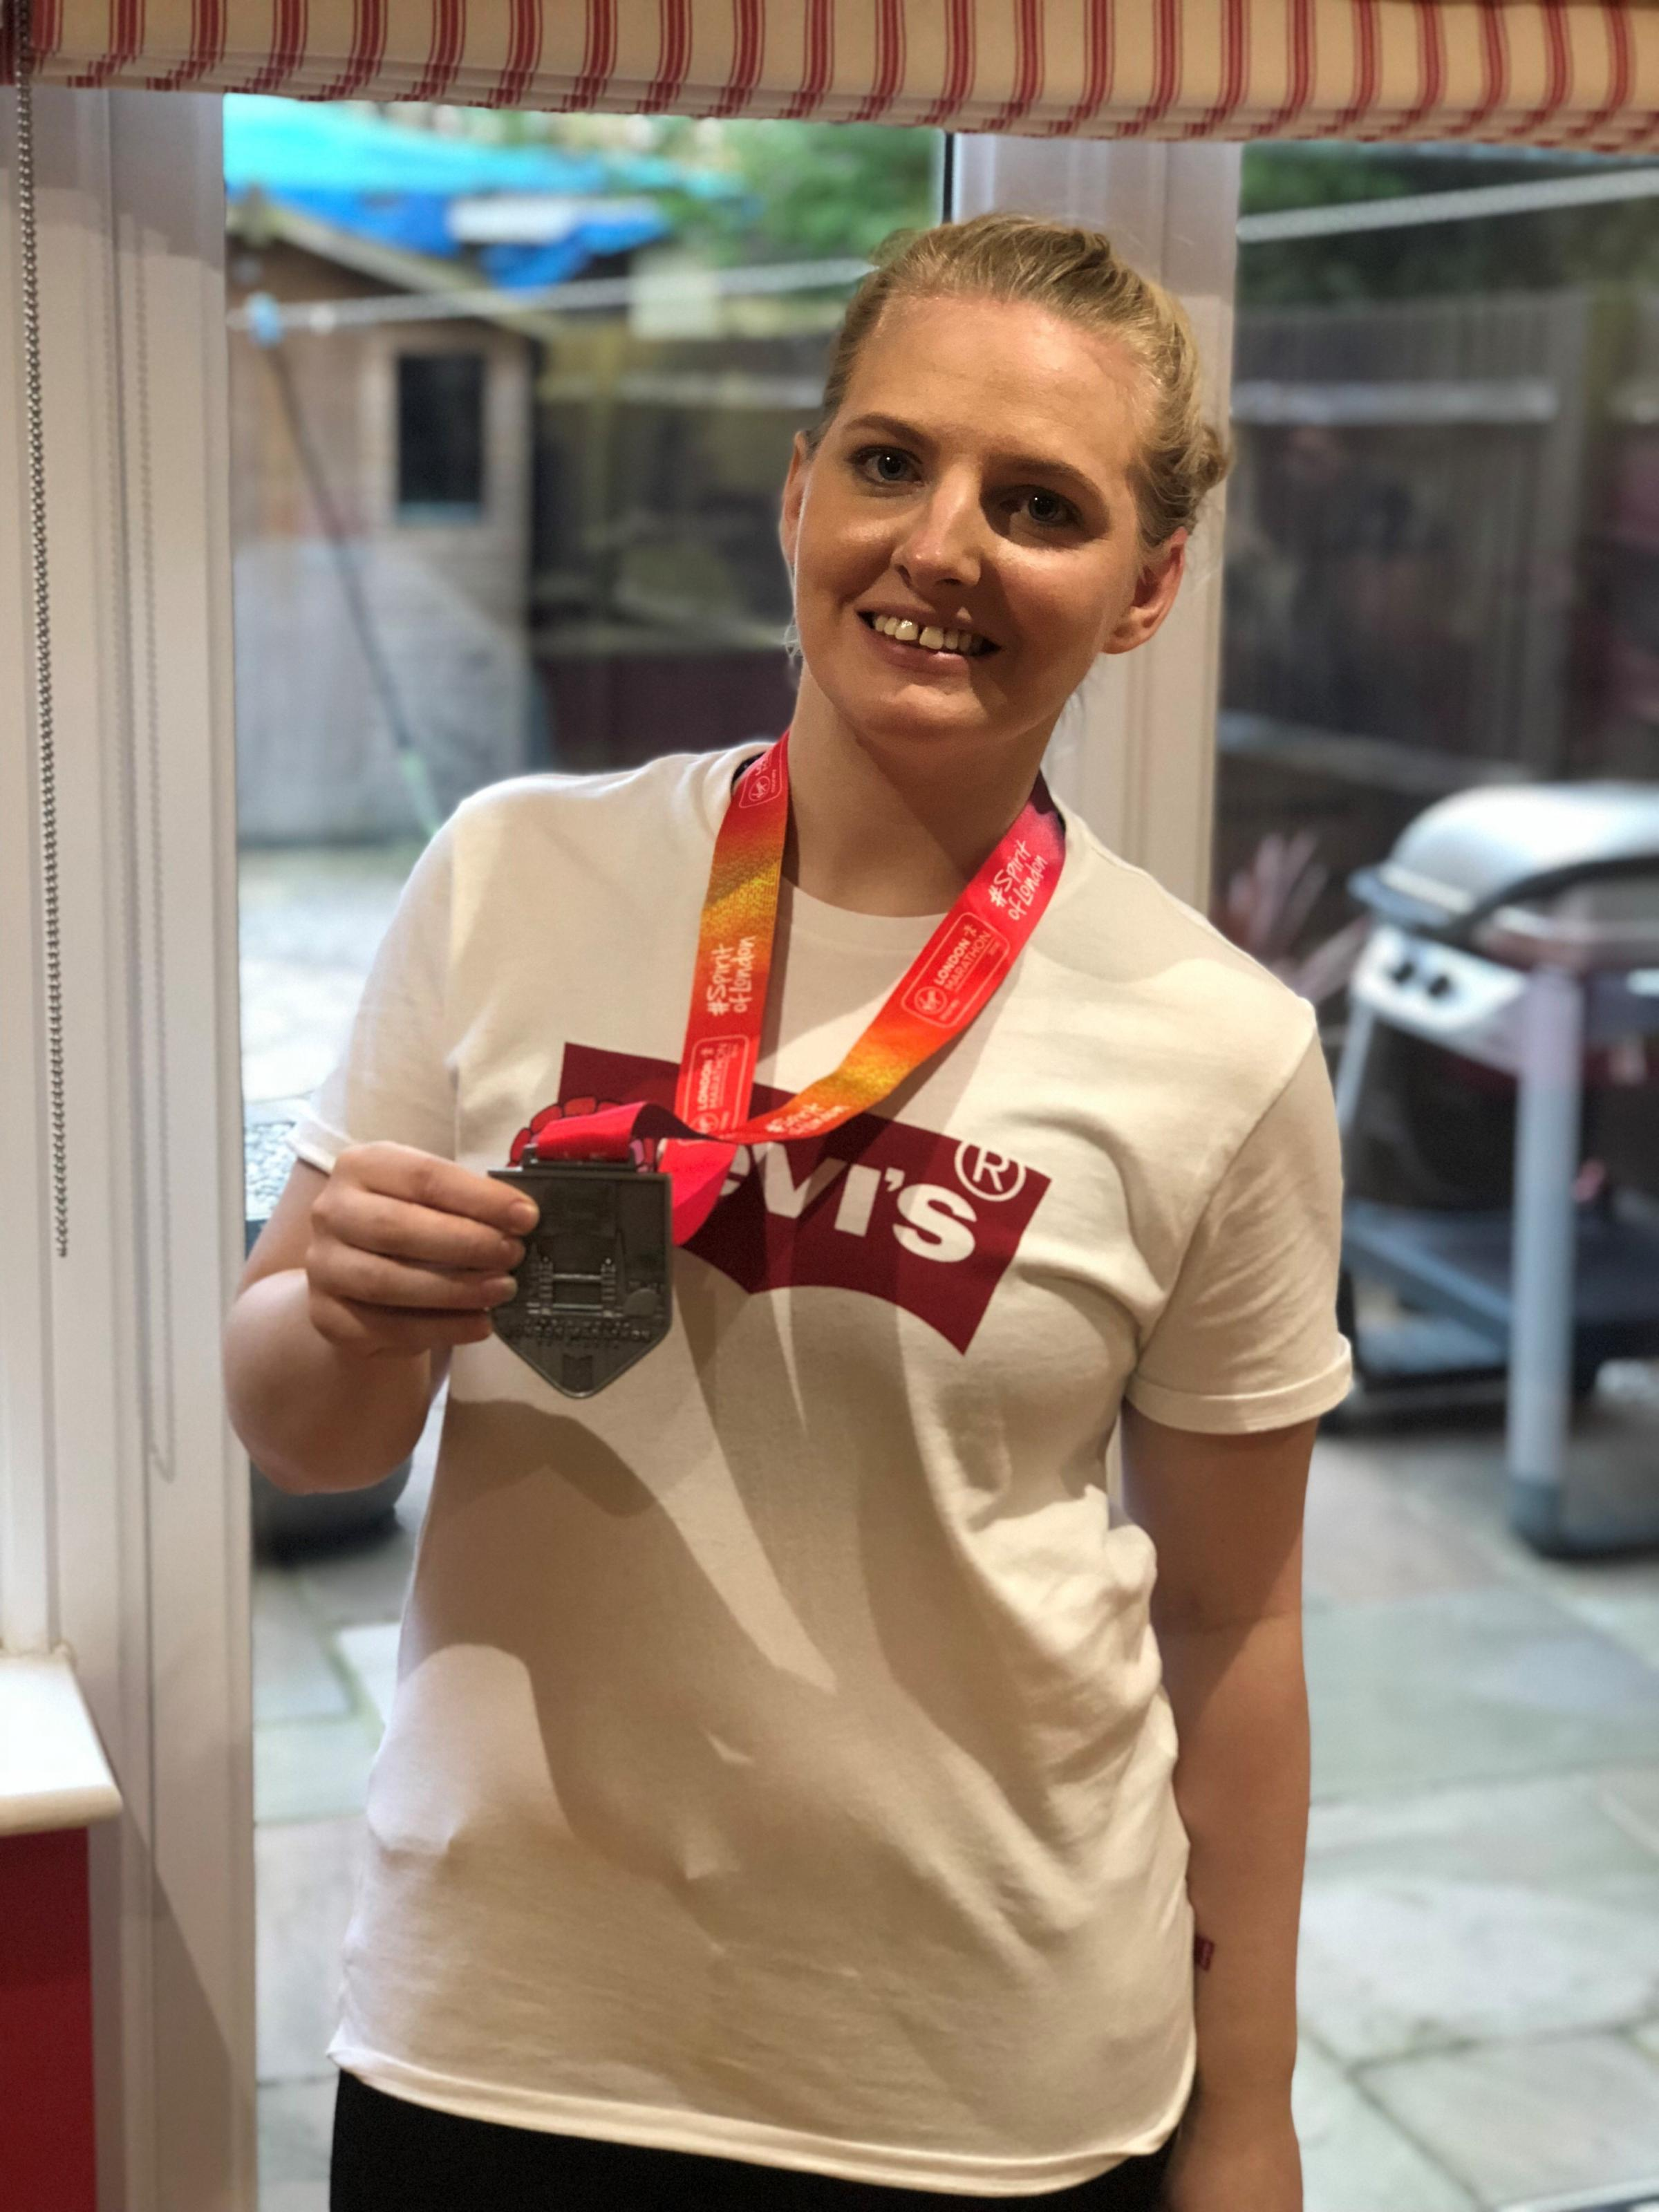 Abbey Bryan with medal after completing London Marathon